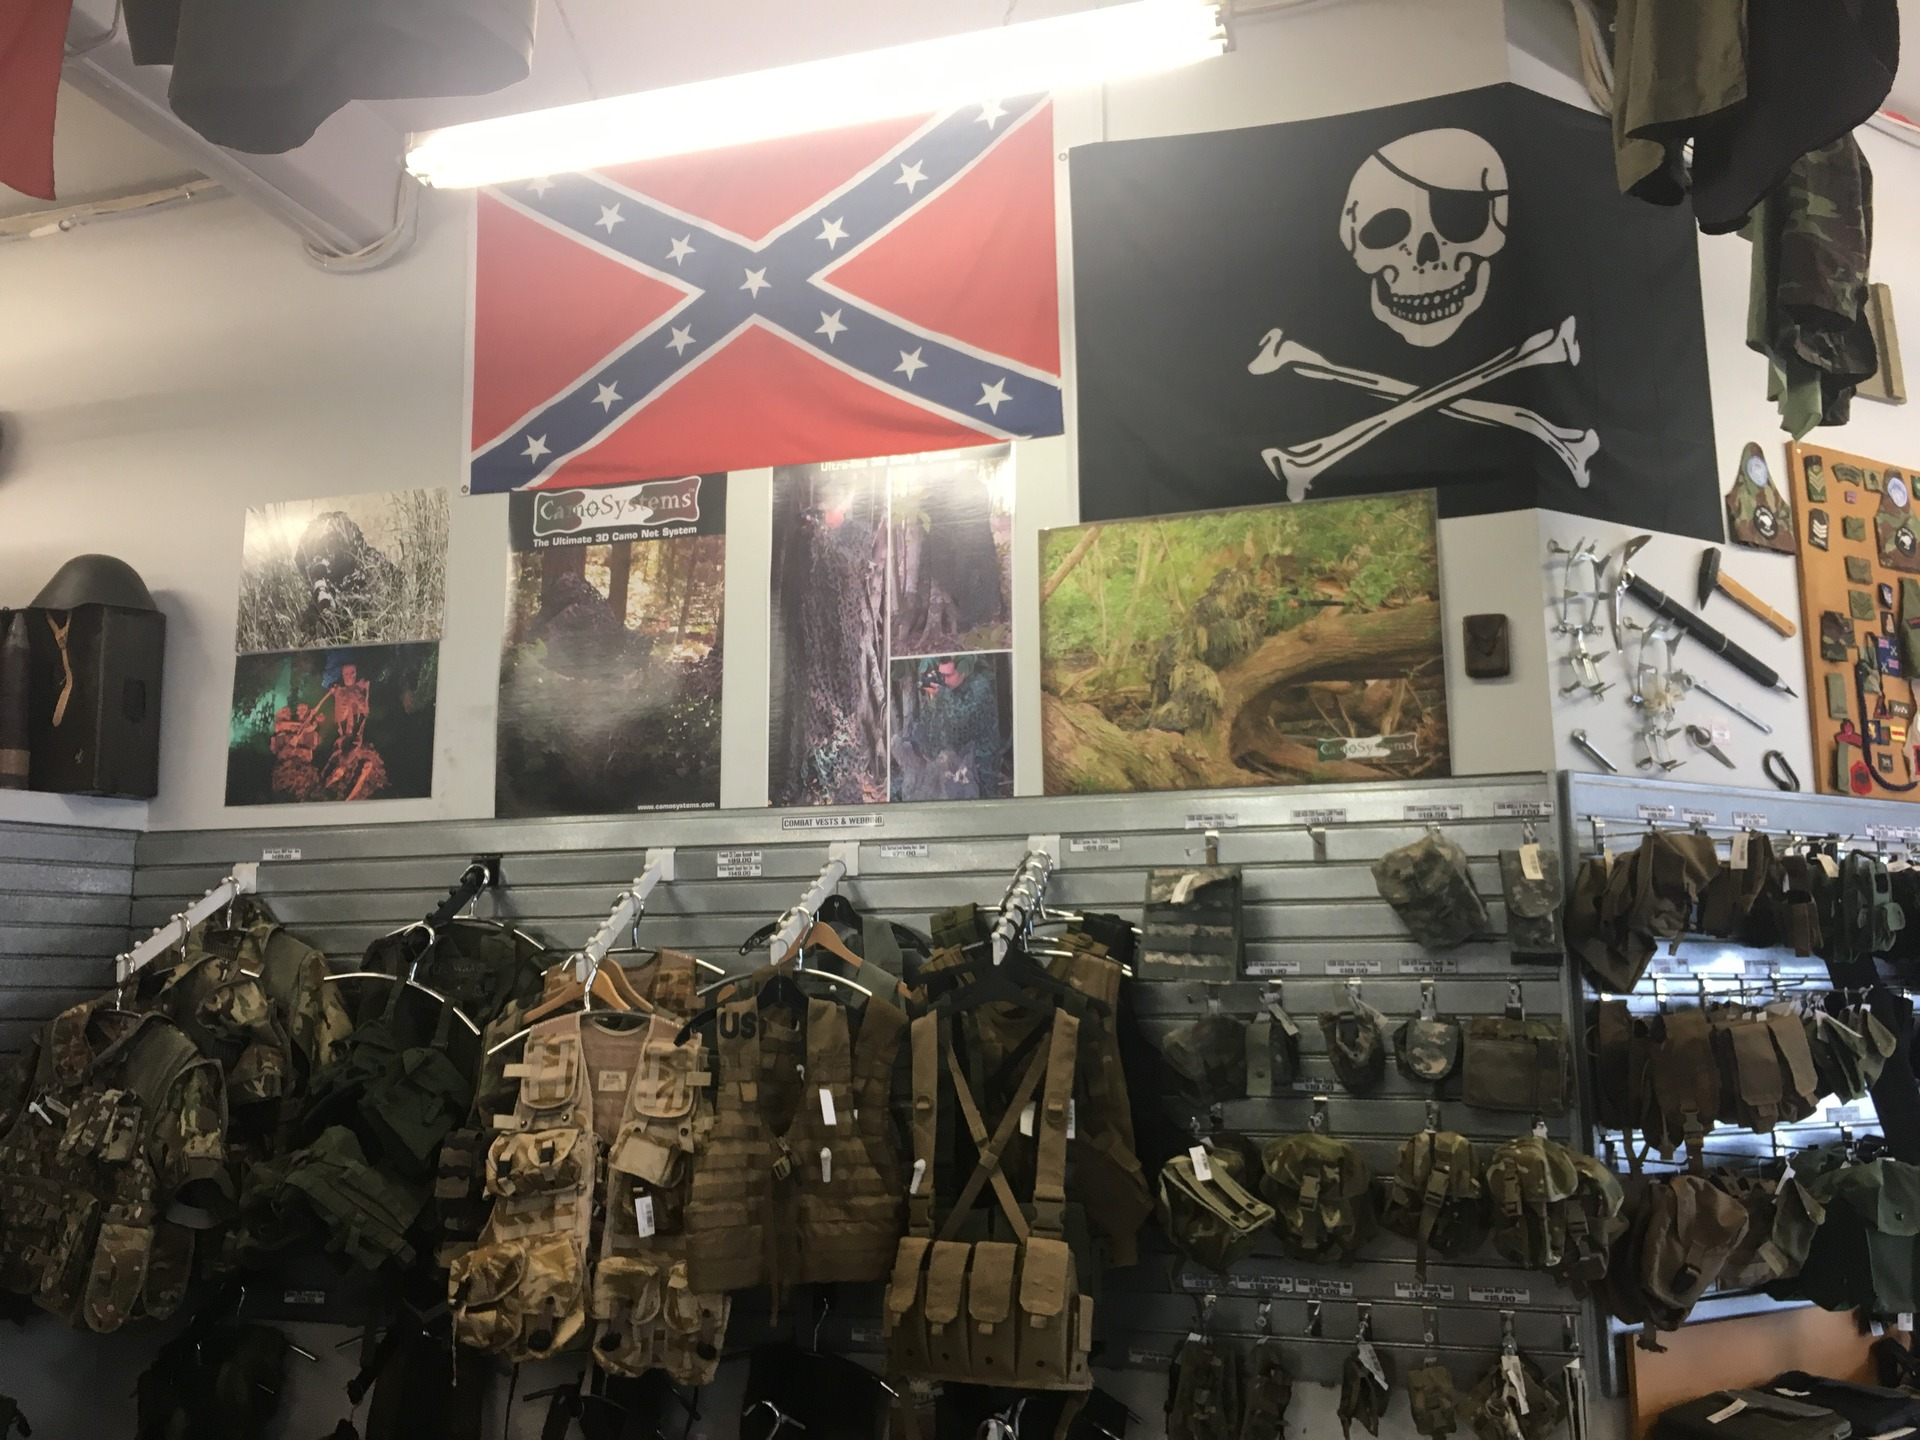 Auckland army surplus store takes down confederate flag after complaints